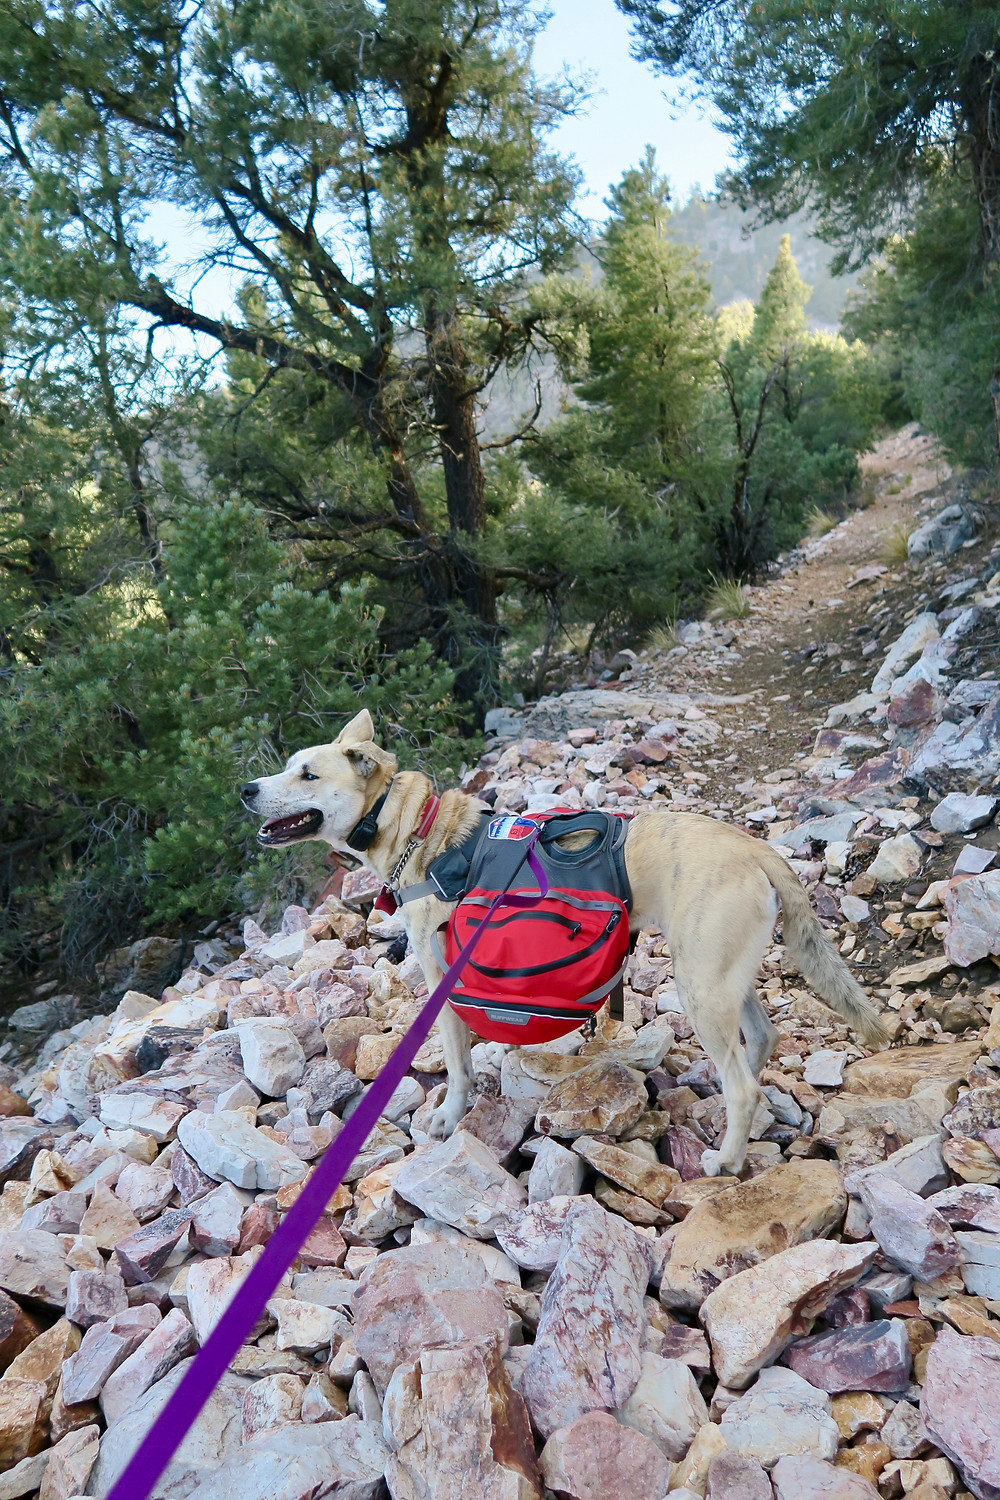 A blond dog wearing a red pack and purple leash stands on large red, pink, and white rocks covering the trail.